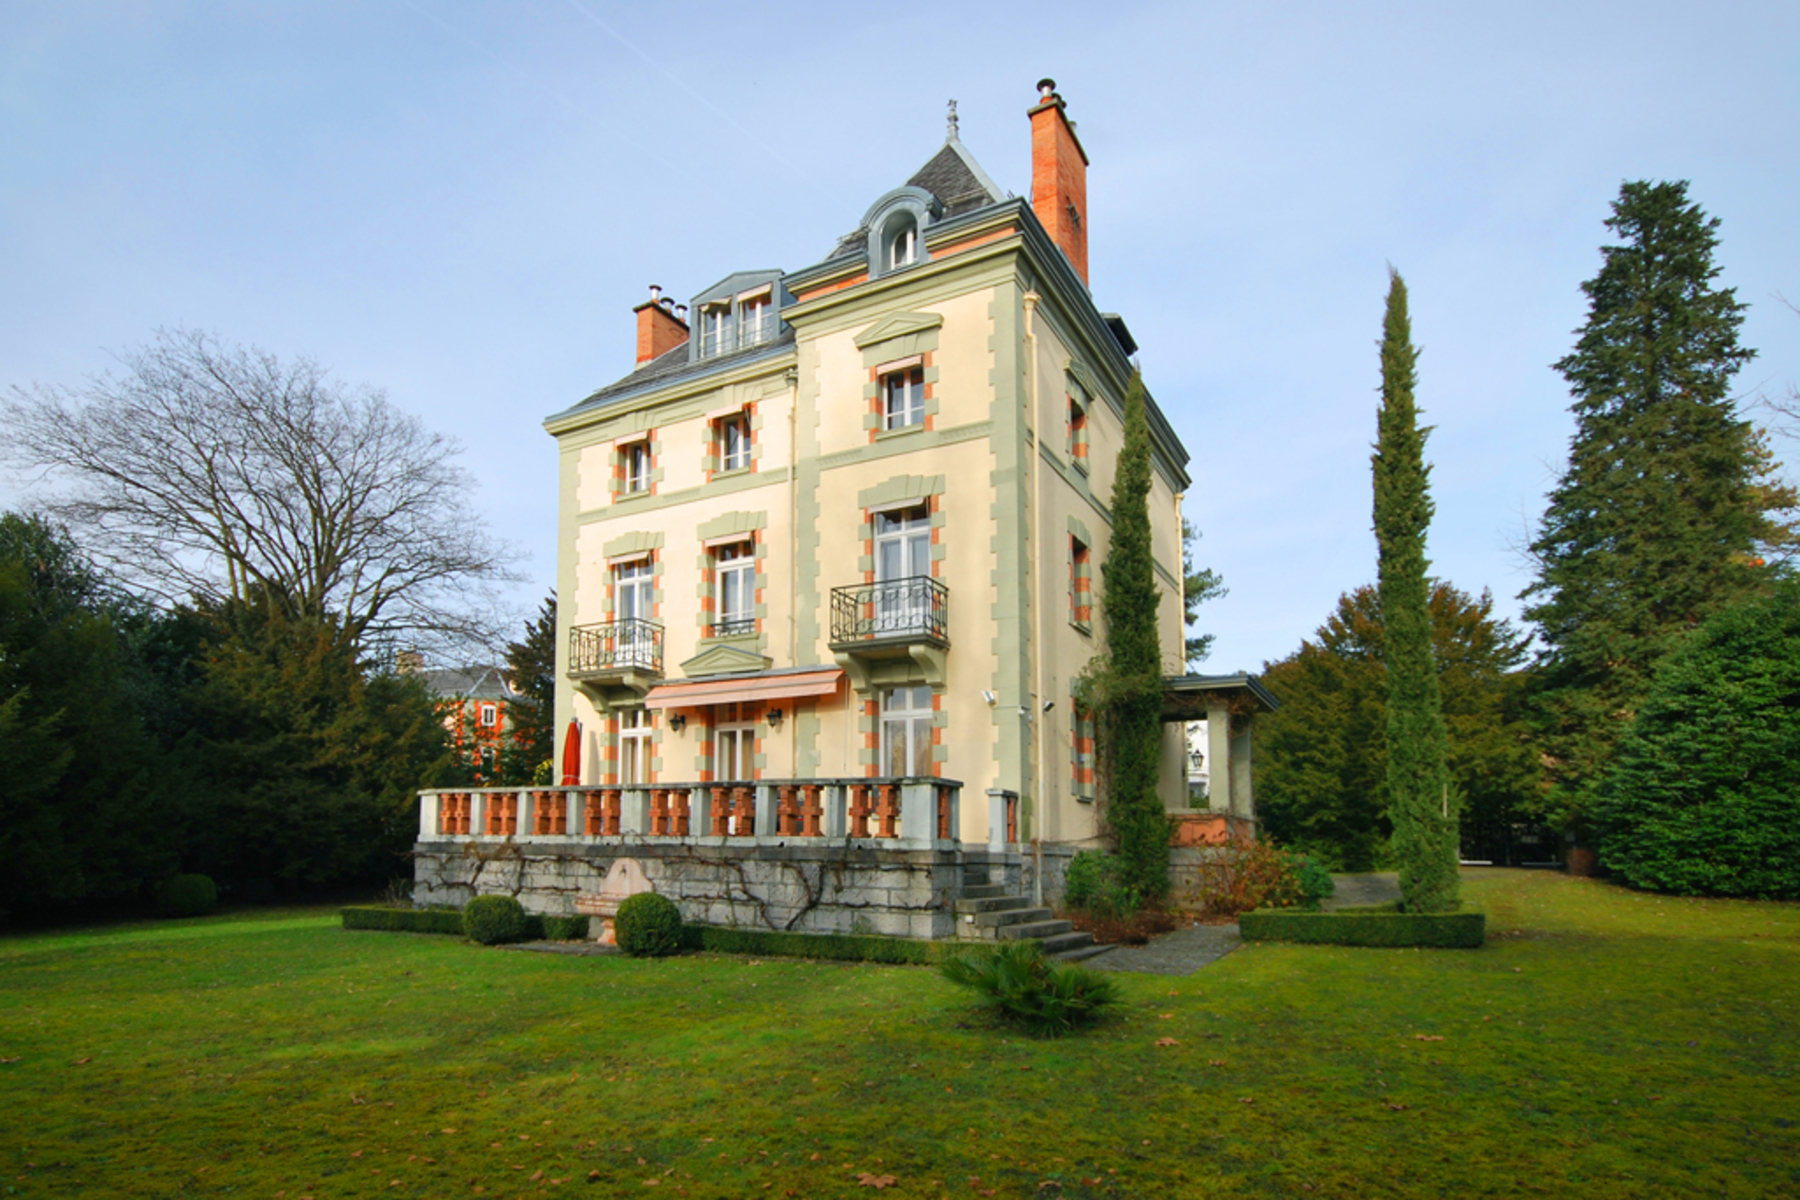 Single Family Home for Sale at Lakeside mansion property ClarensMontreux Montreux, Vaud, 1820 Switzerland